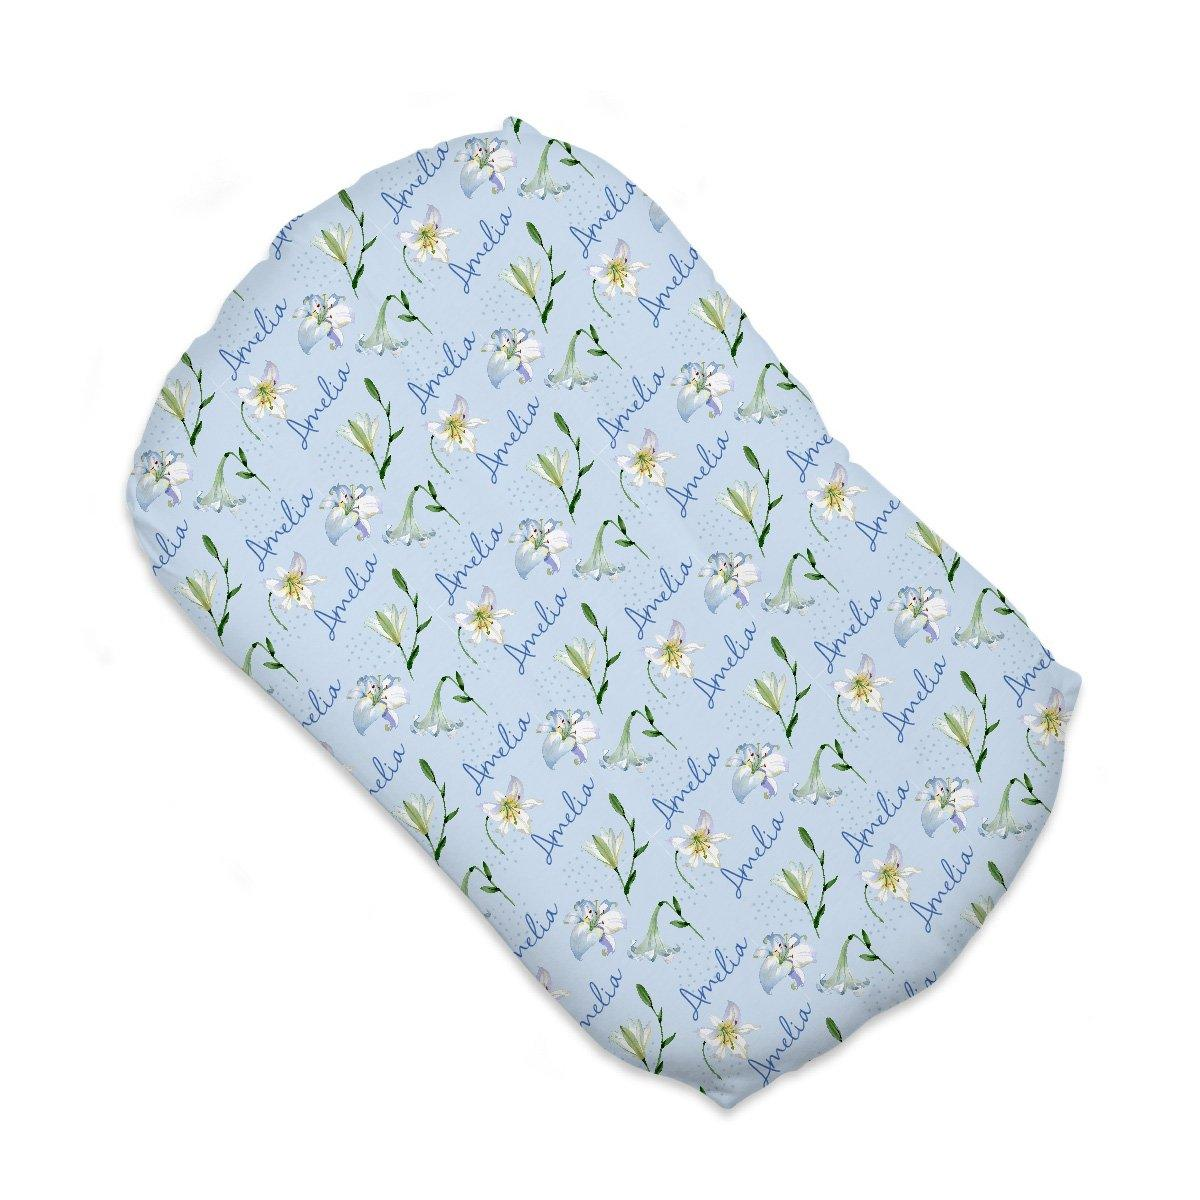 Amelia's Lovely Lily | Sleep Nest Covers for SnuggleMe Organic™